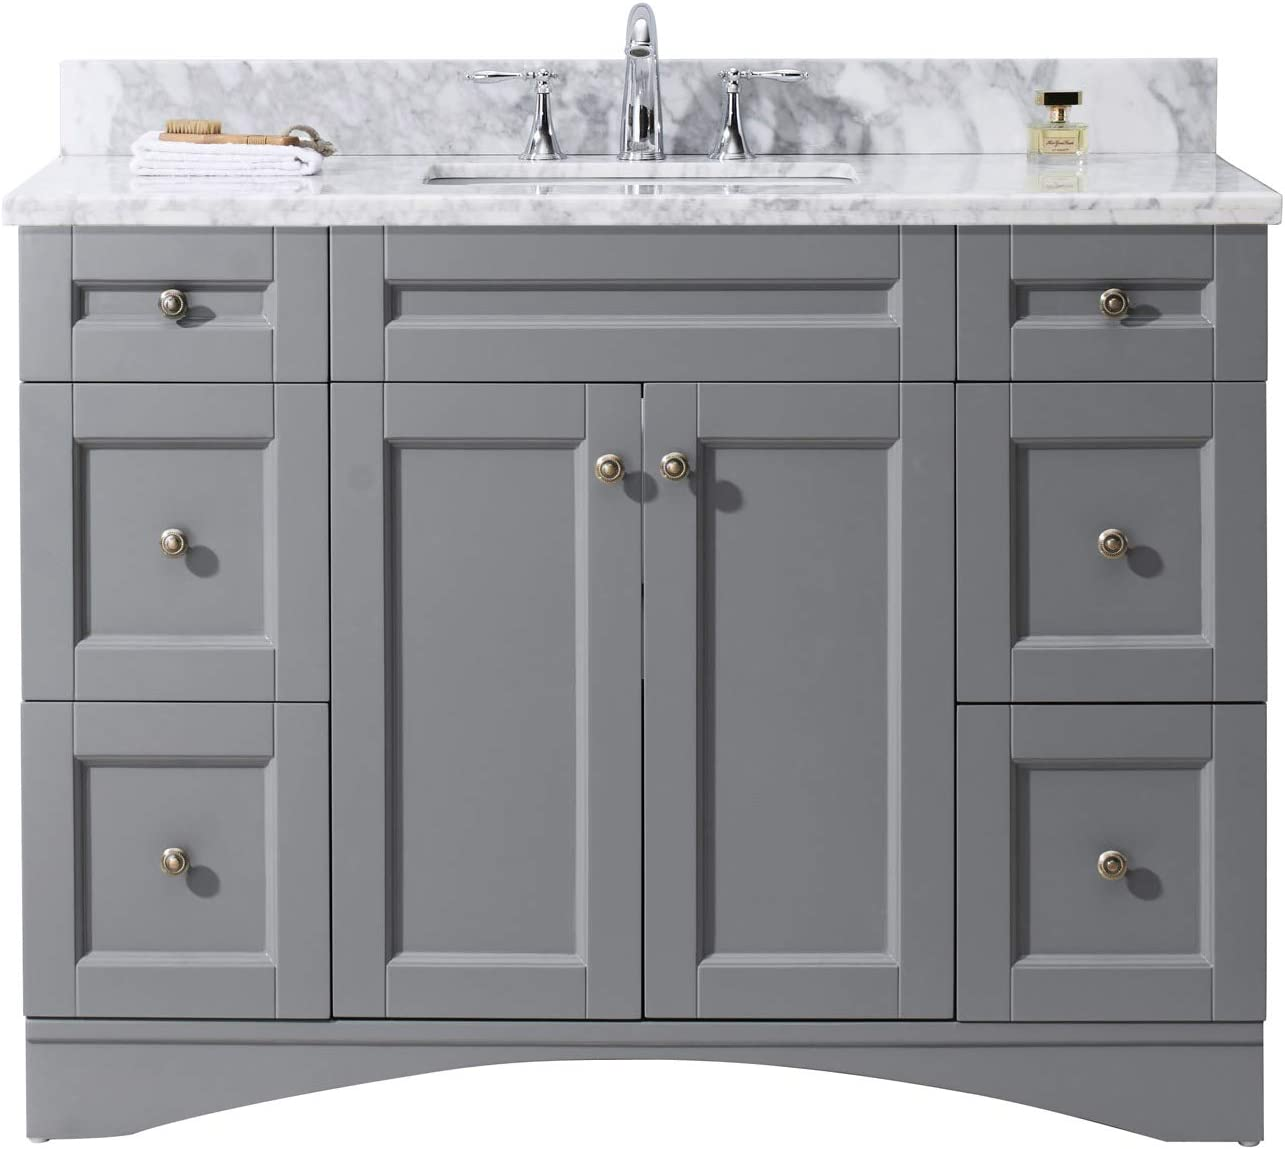 Virtu USA ES-32048-WMSQ-GR-NM Elise 48 Single Bathroom Vanity in Grey with Marble Top and Square Sink, 48 inches, Cool Gray